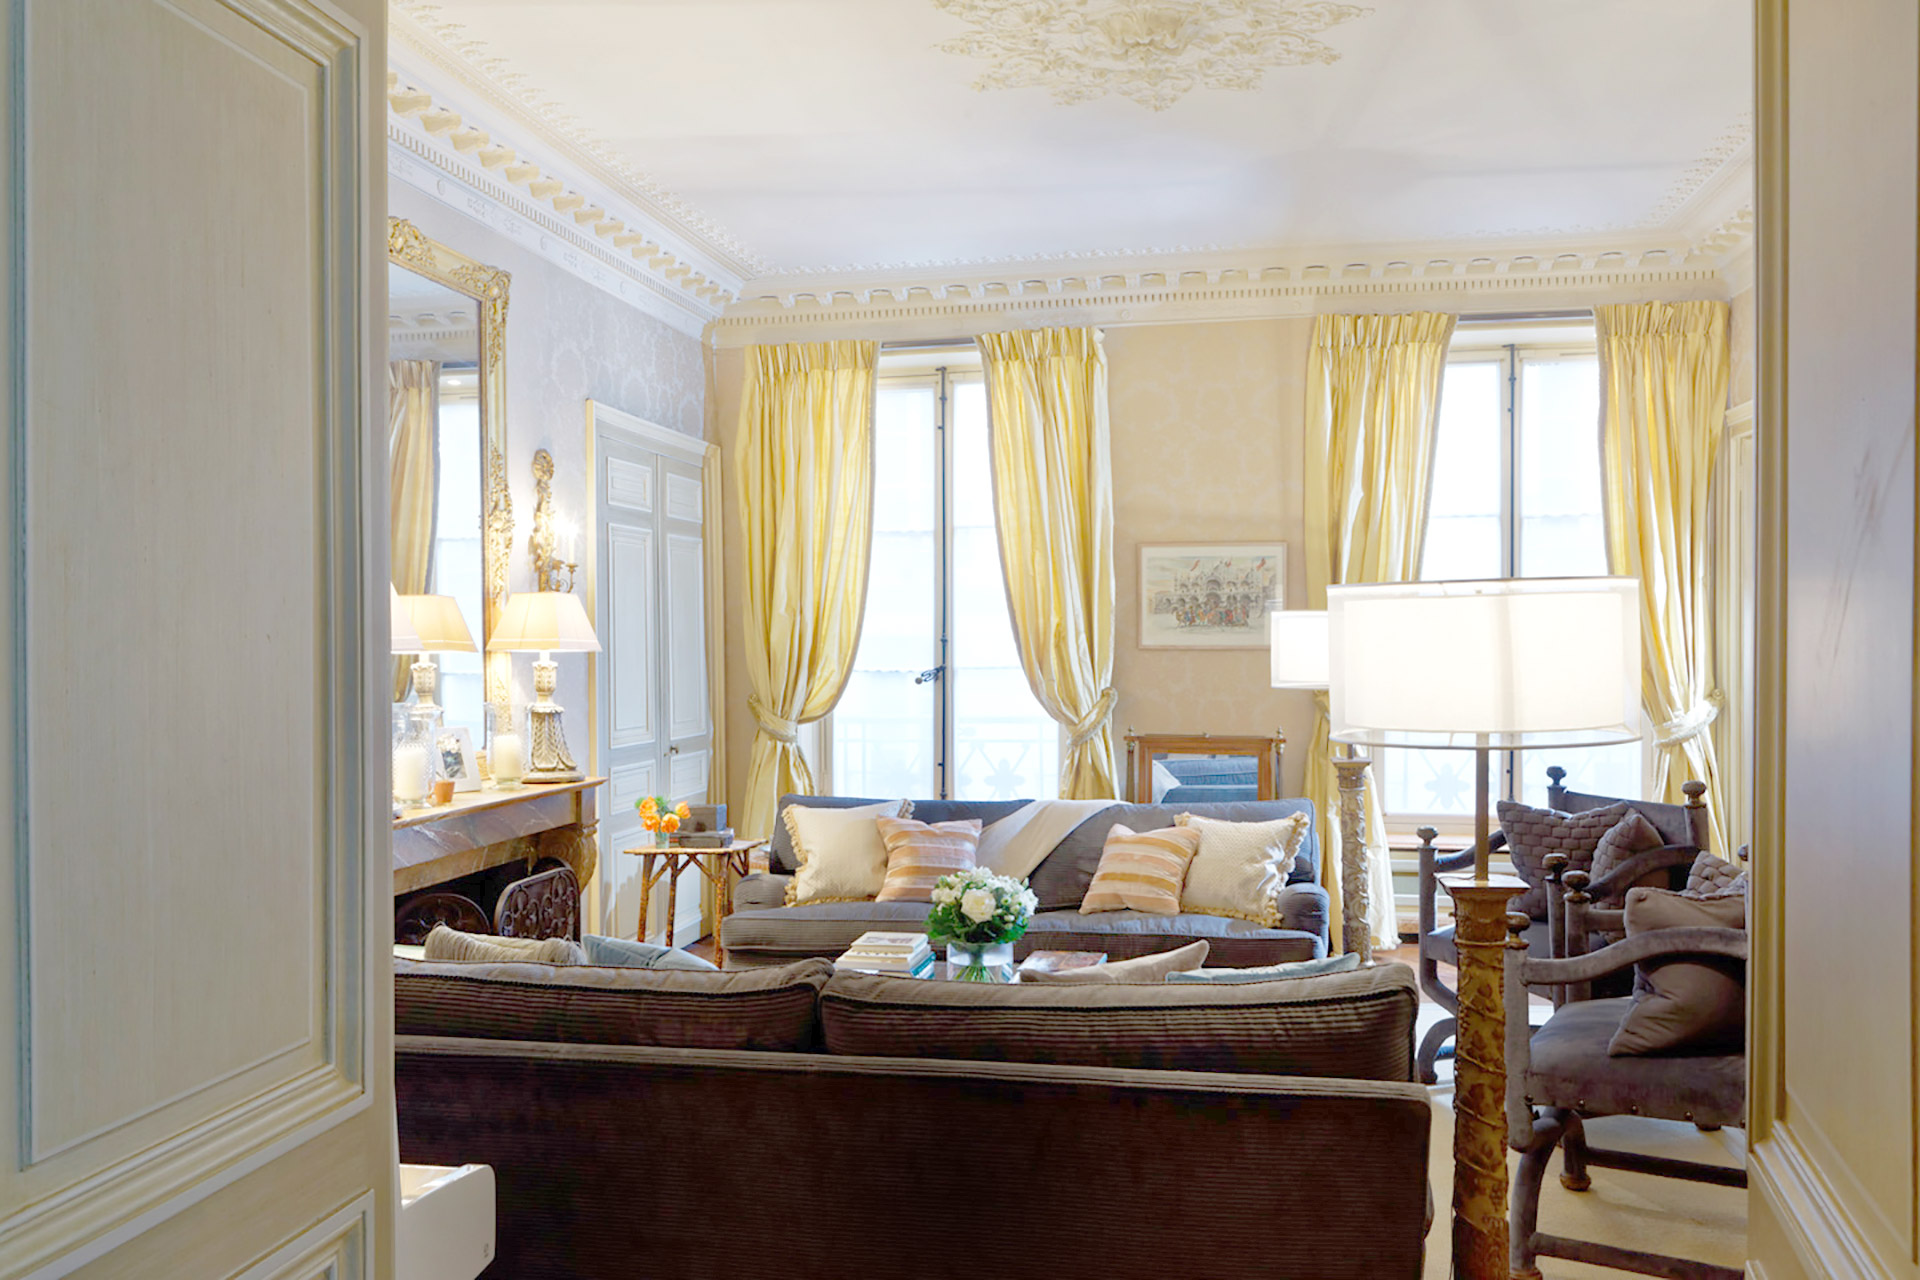 Welcome to the sumptuous Bailly Paris apartment